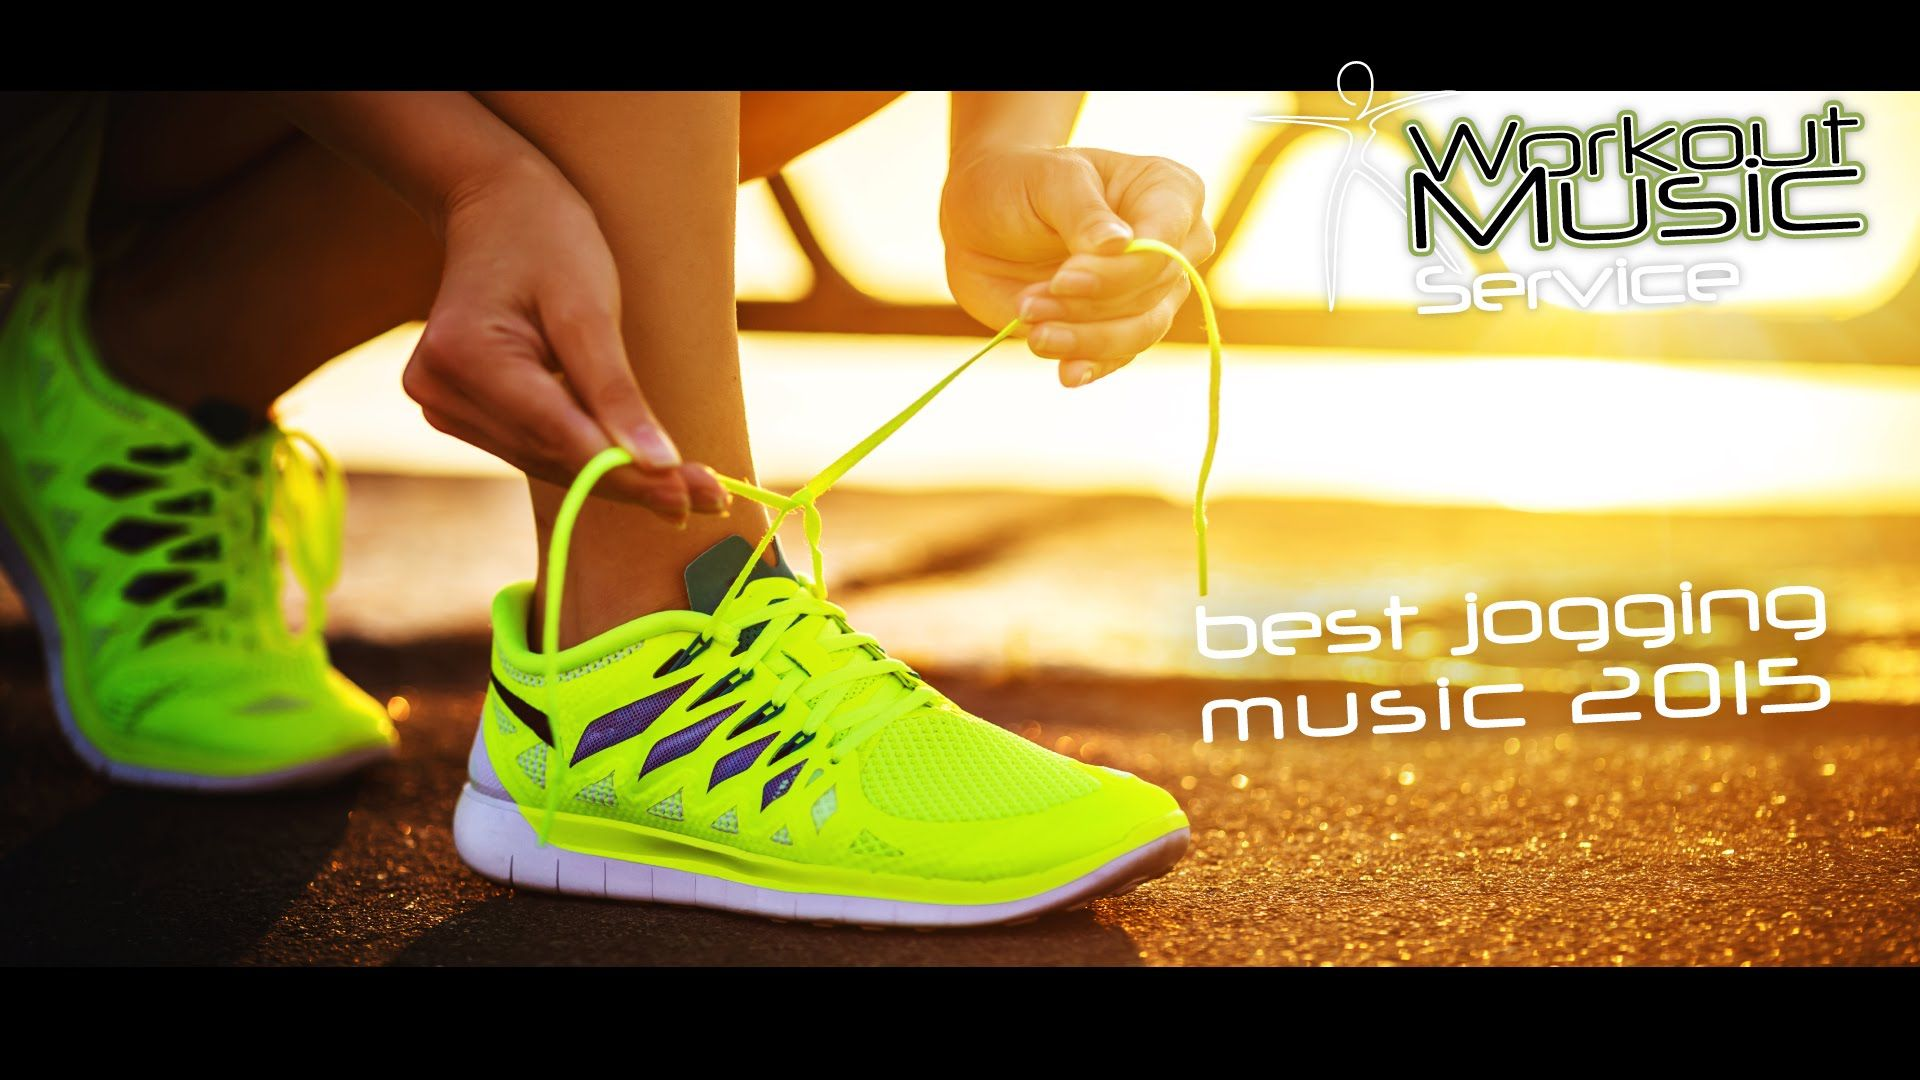 Best Jogging Music 2015 - Best running songs top 100 2017 - YouTube